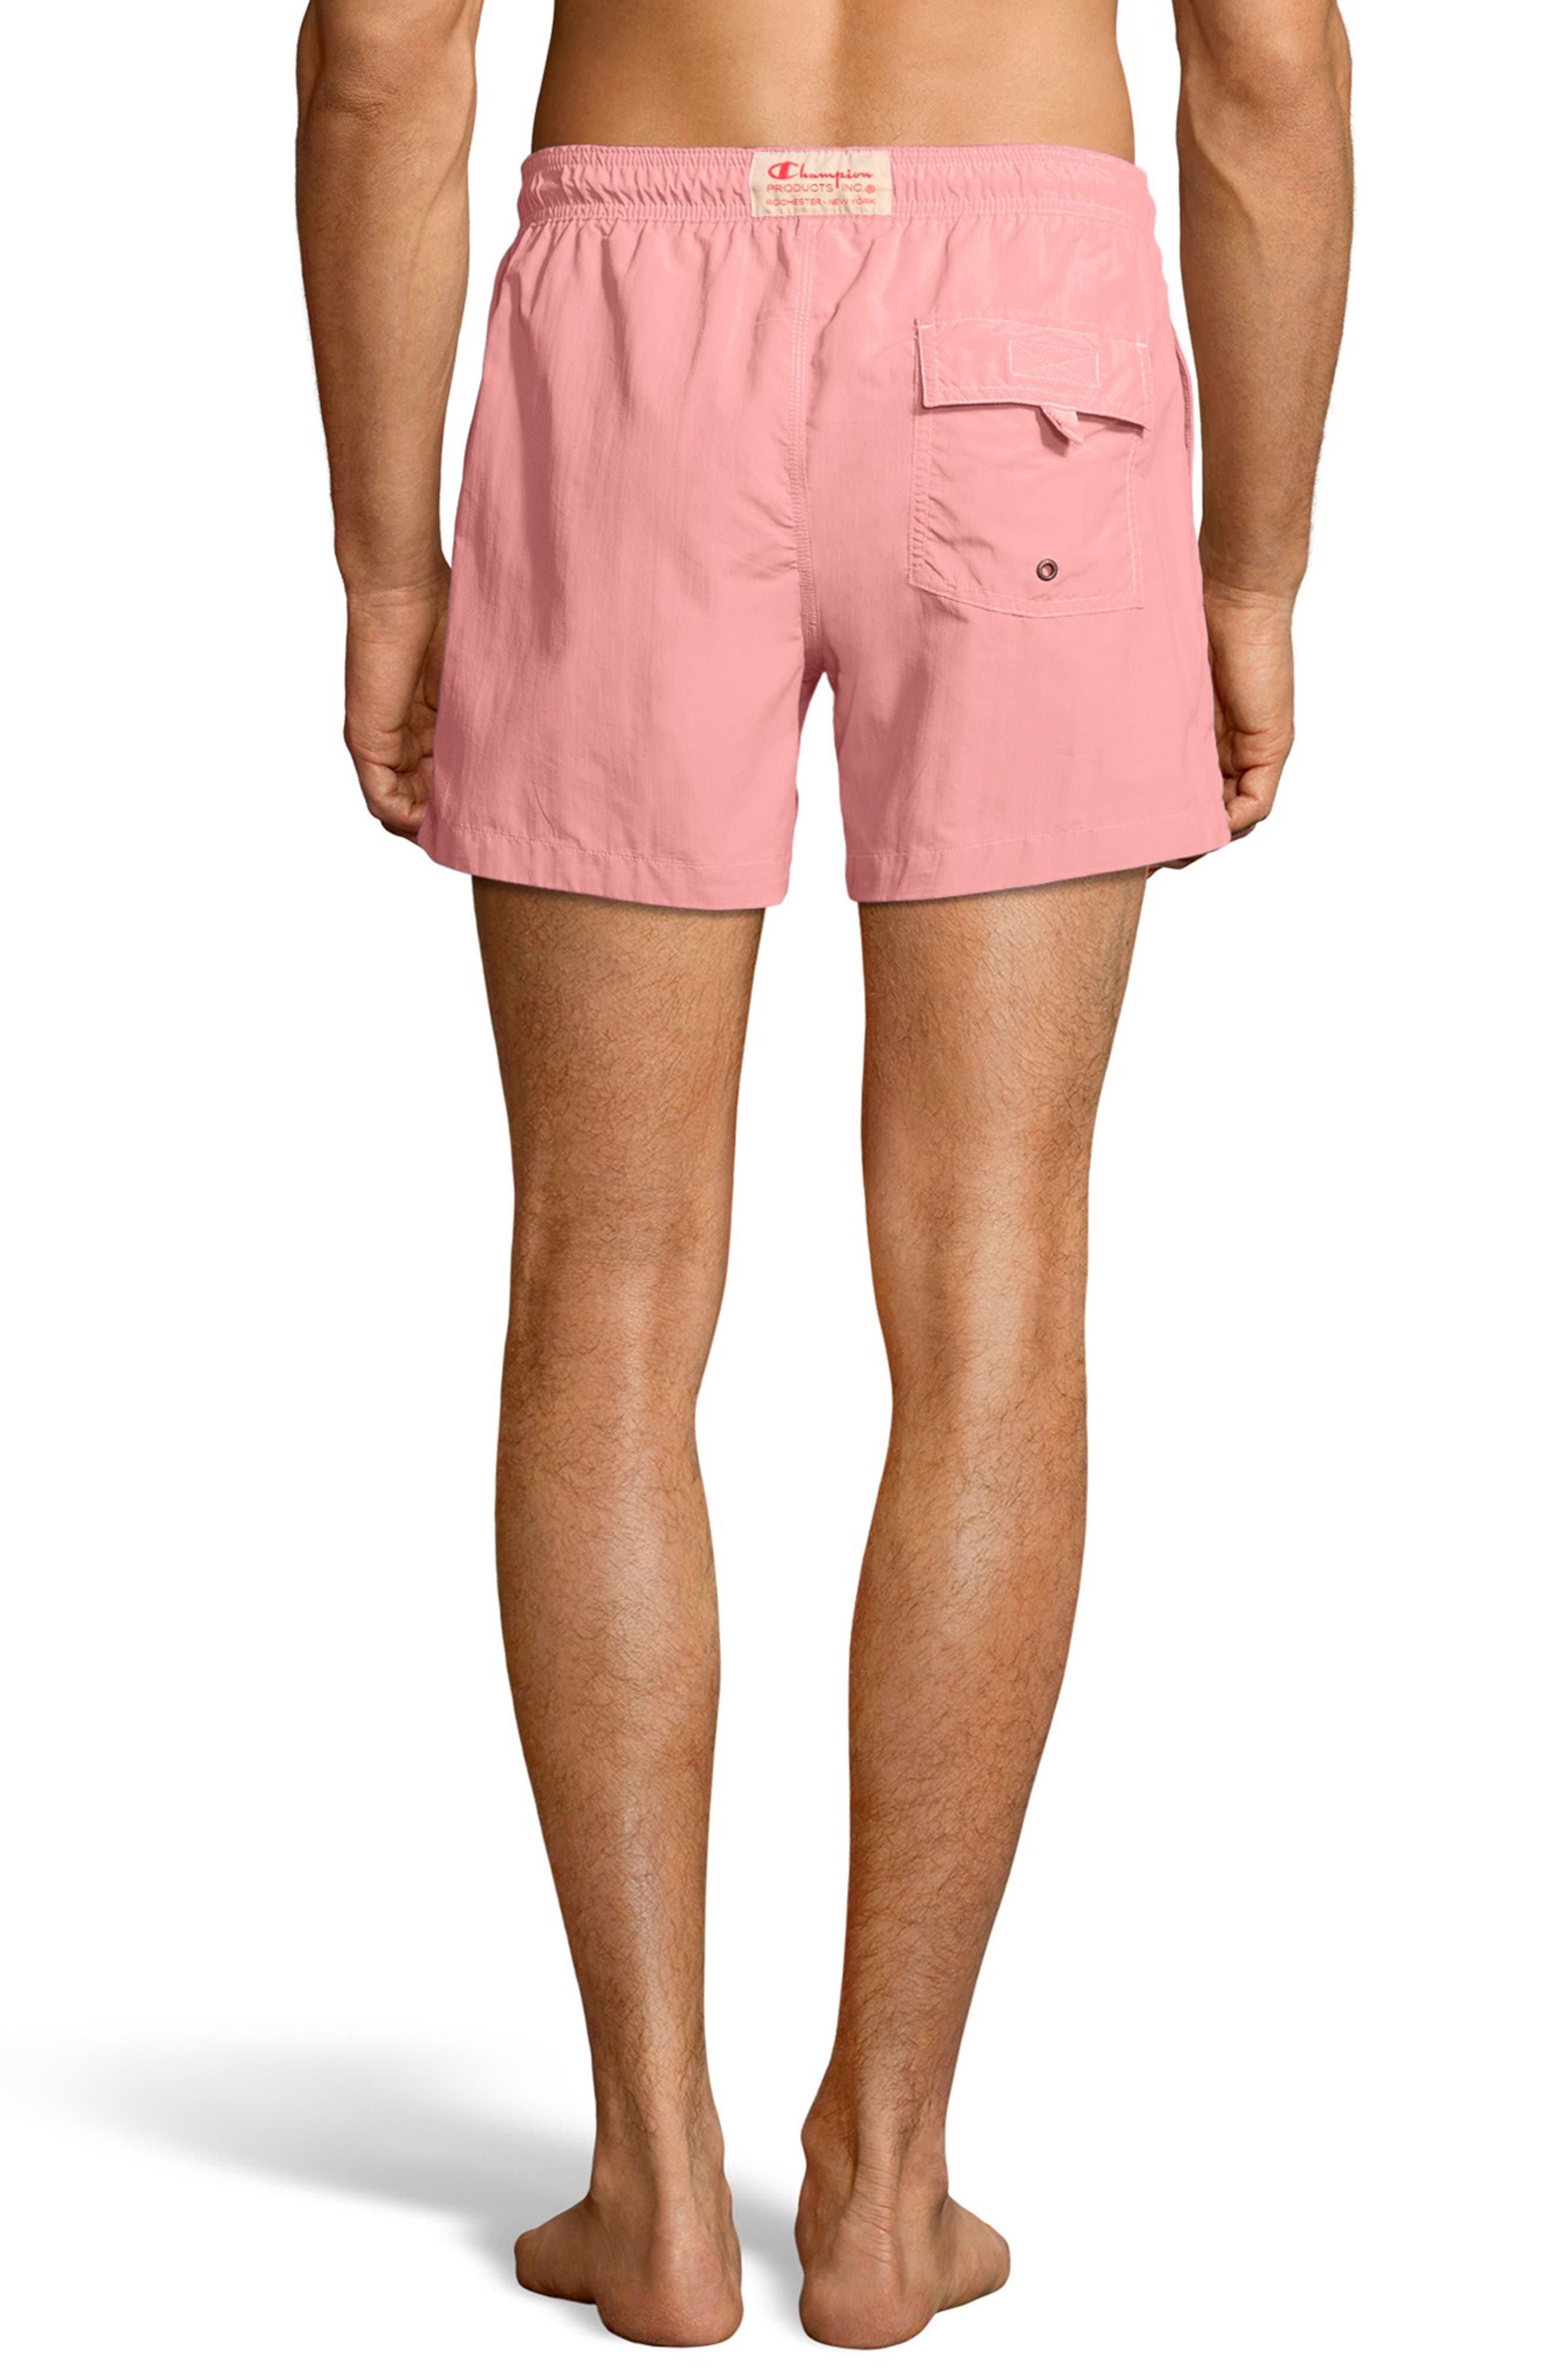 Pacific Sand Swim Trunks,                             Alternate thumbnail 2, color,                             Pink Bow